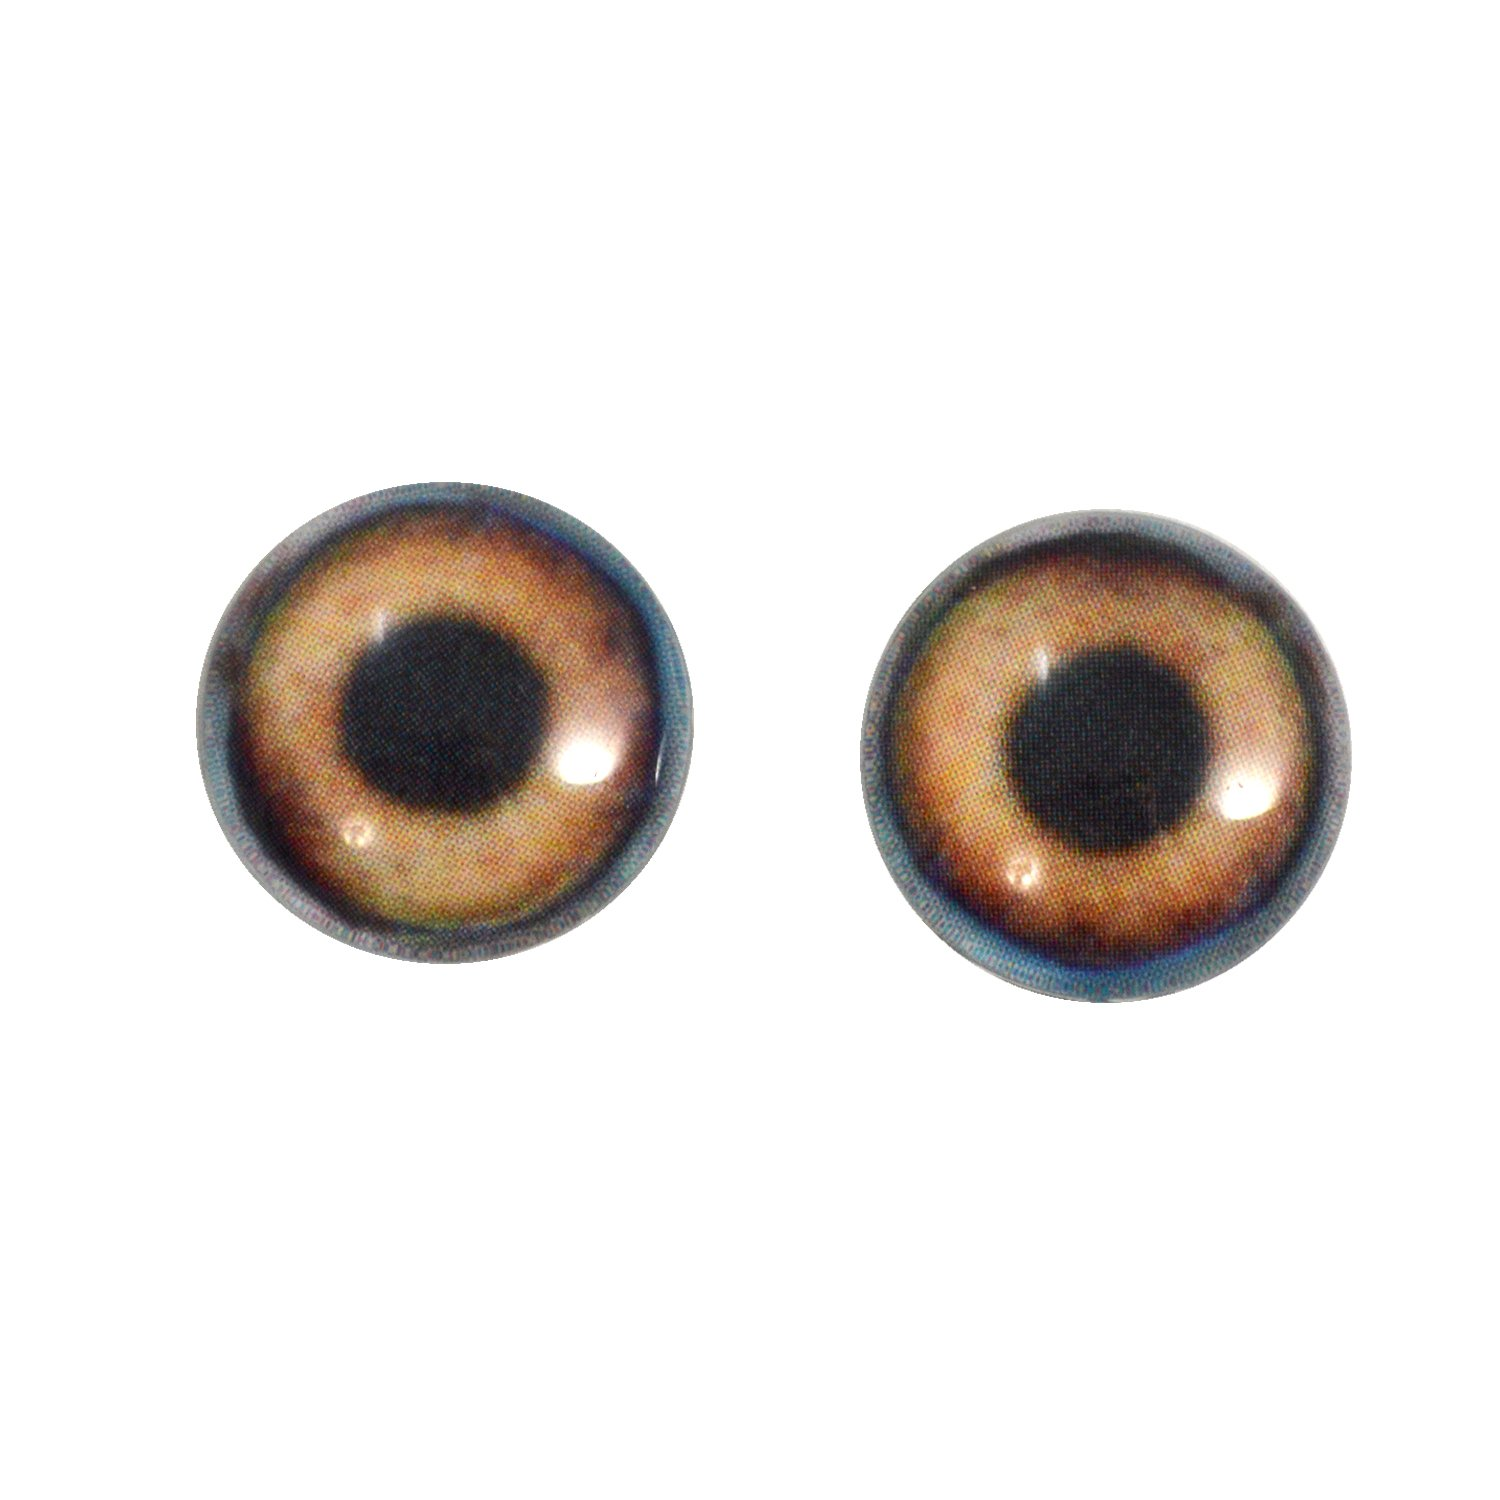 16mm Glass Brown Dog Eyes Animal Pair Realistic Taxidermy Sculptures or Jewelry Making Crafts Set of 2